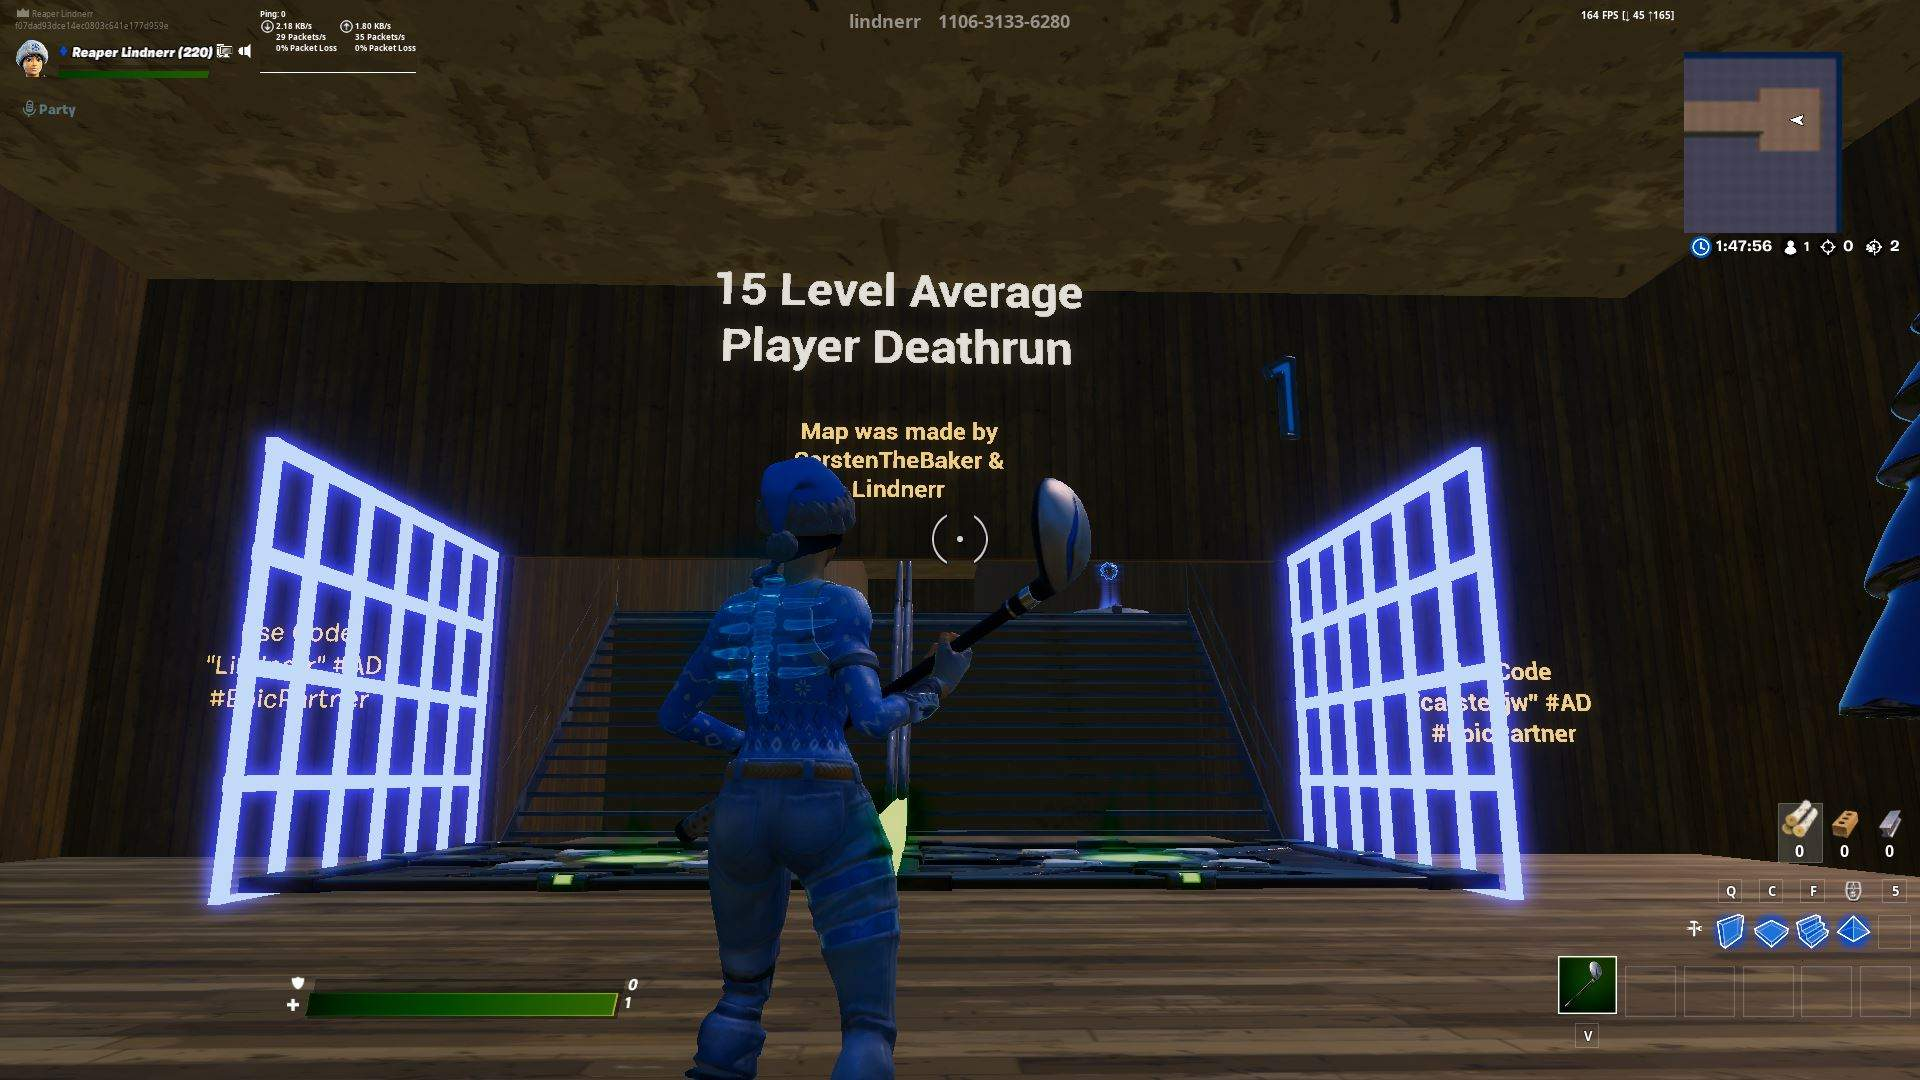 15 LVL AVERAGE PLAYER DEATHRUN